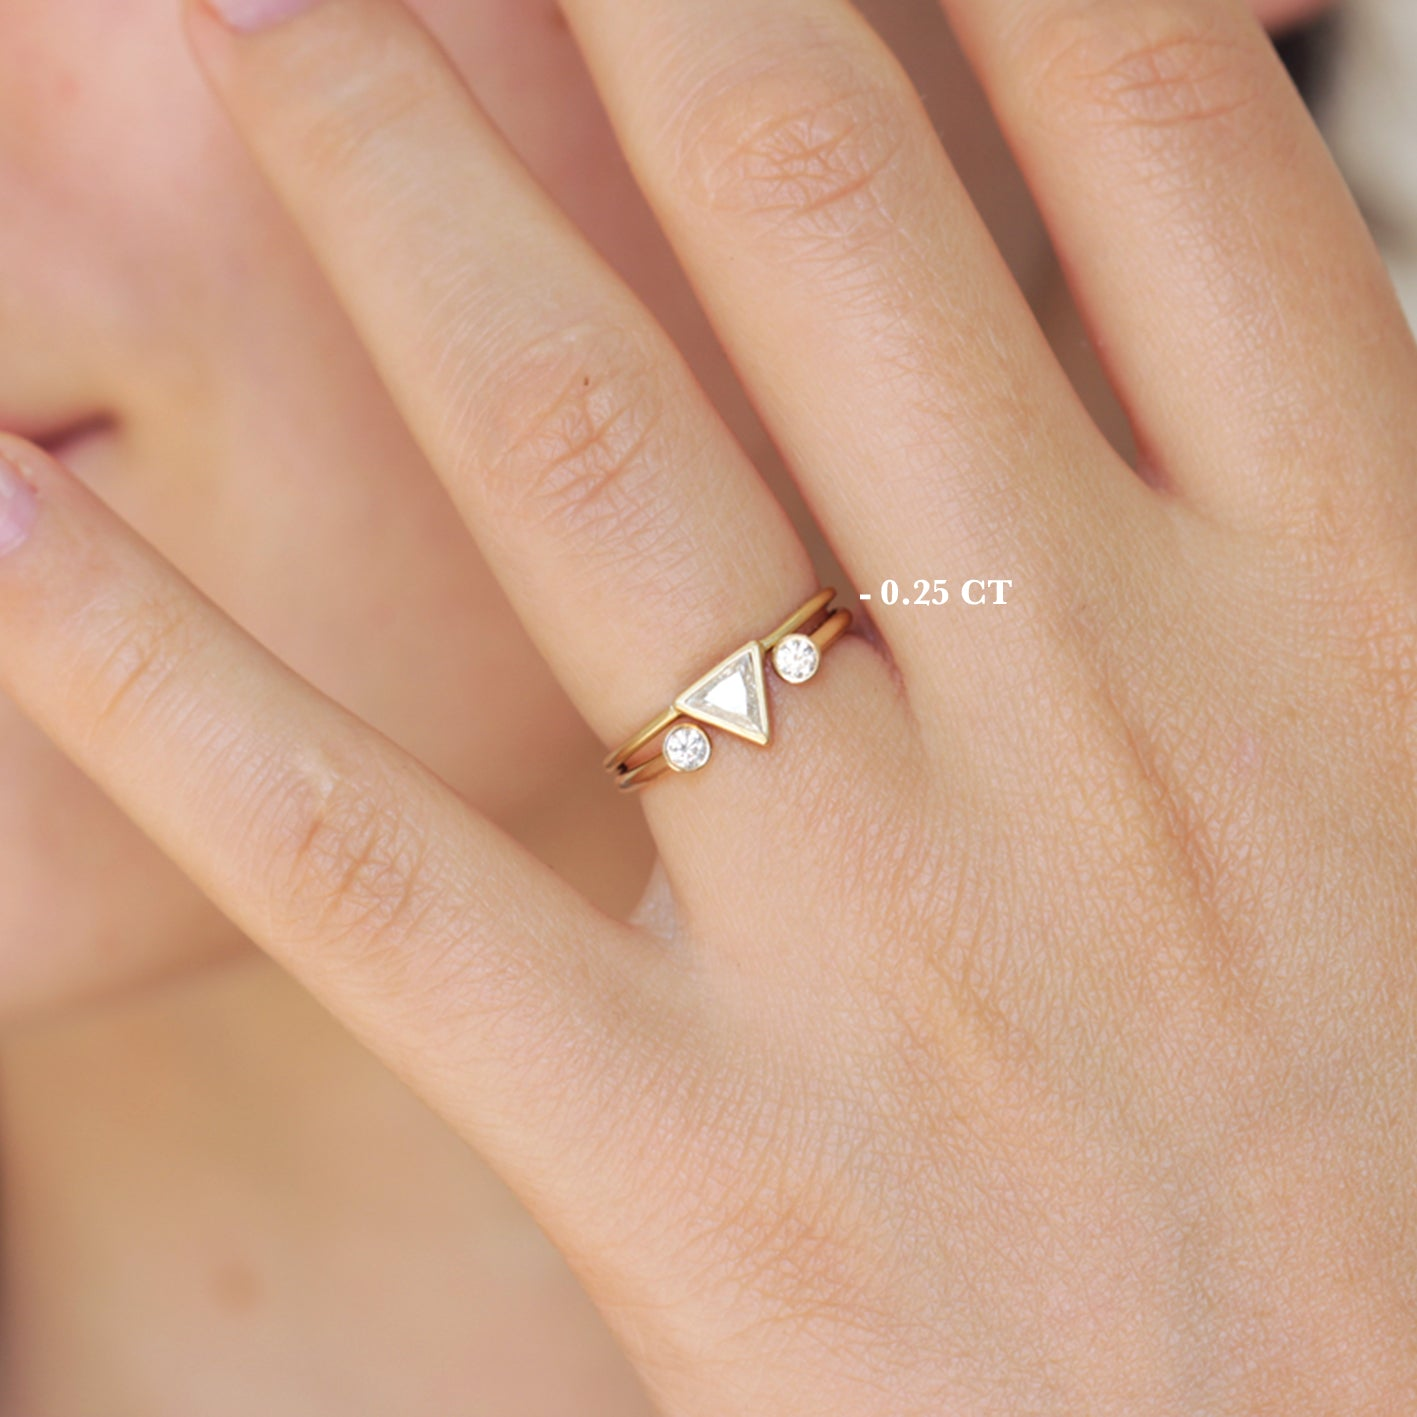 Trillion Diamond Ring - Simple Engagement Ring